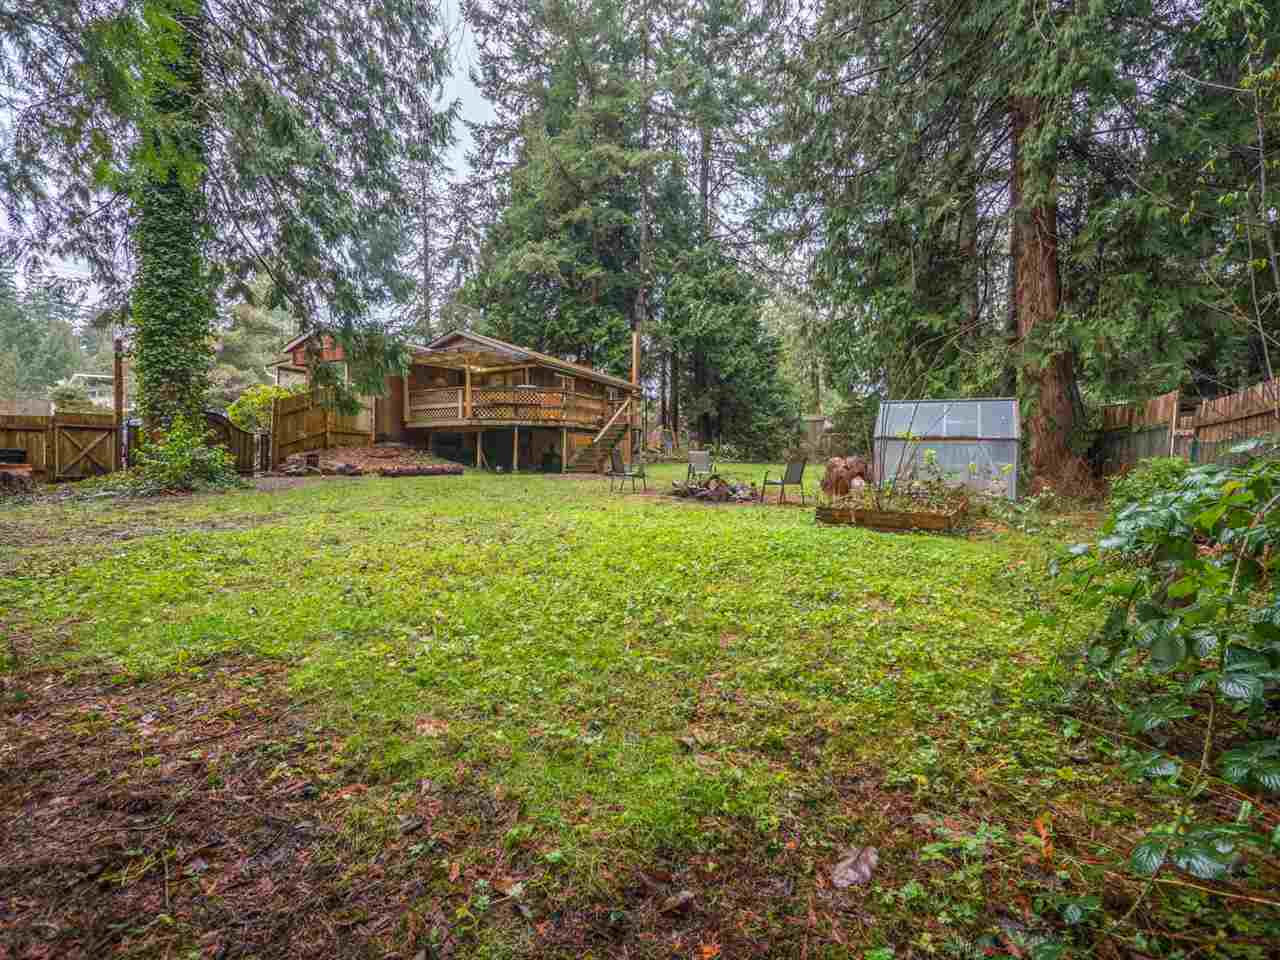 Photo 16: Photos: 5592 WAKEFIELD Road in Sechelt: Sechelt District Manufactured Home for sale (Sunshine Coast)  : MLS® # R2230720